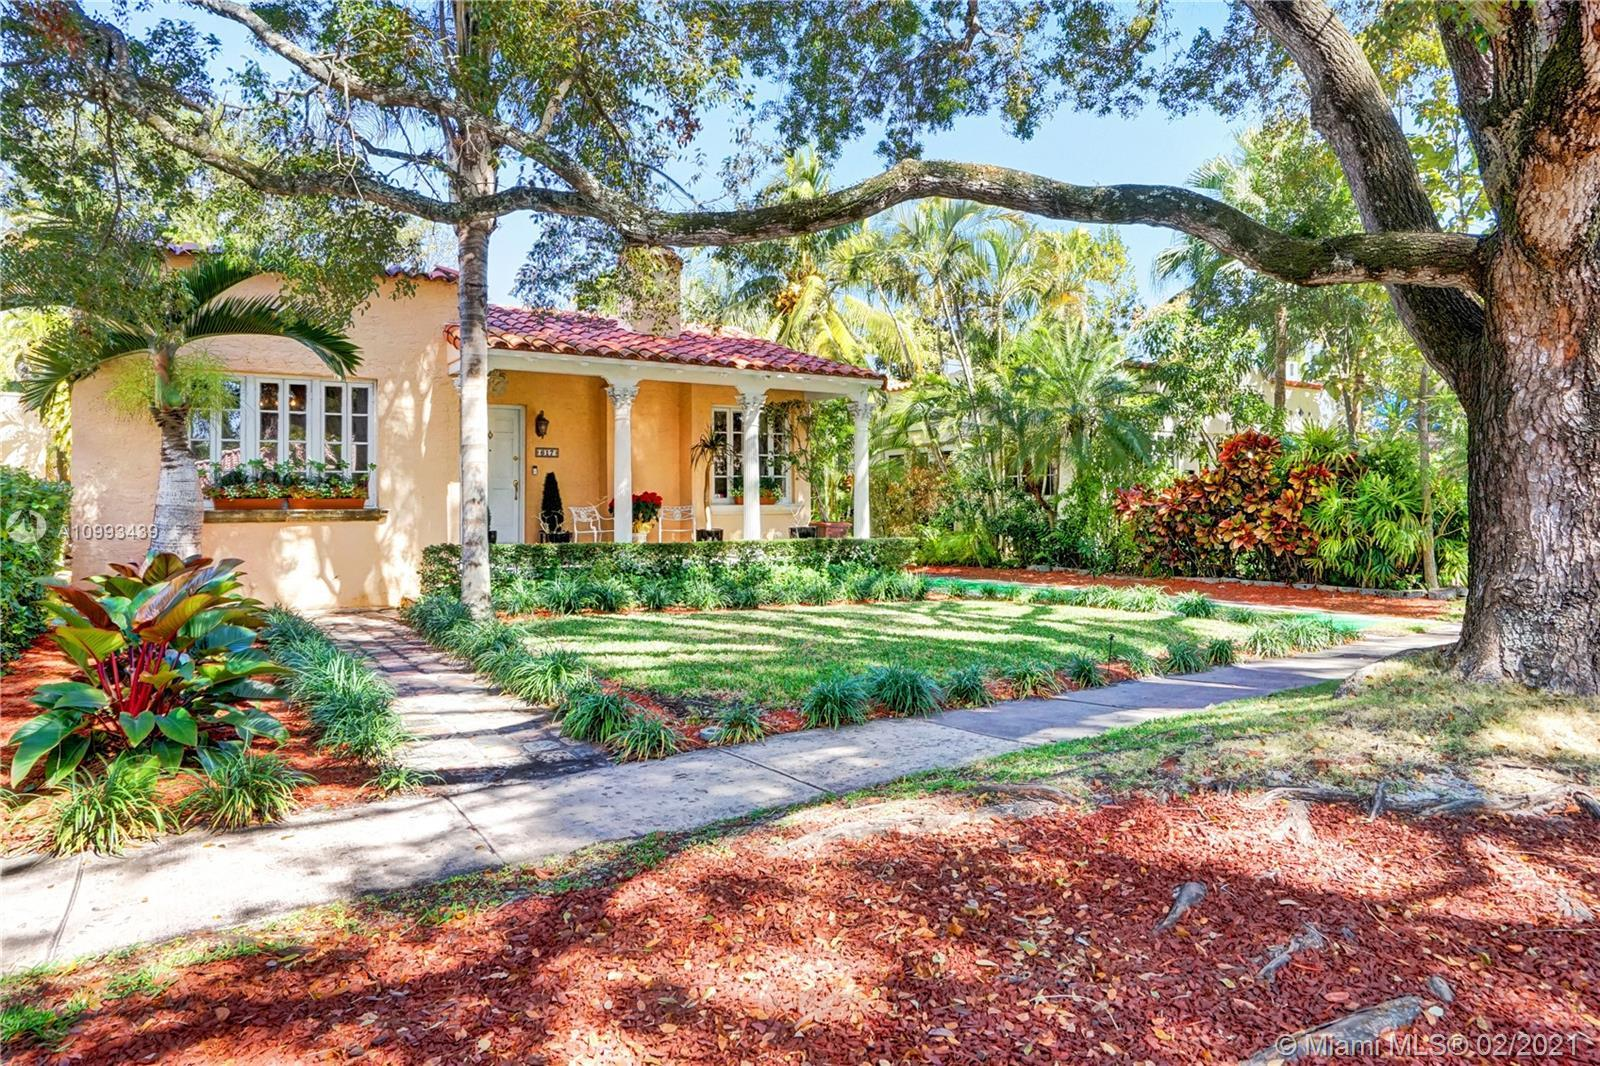 Impressive home located in the highly desirable North Gables neighborhood. French doors and an abund